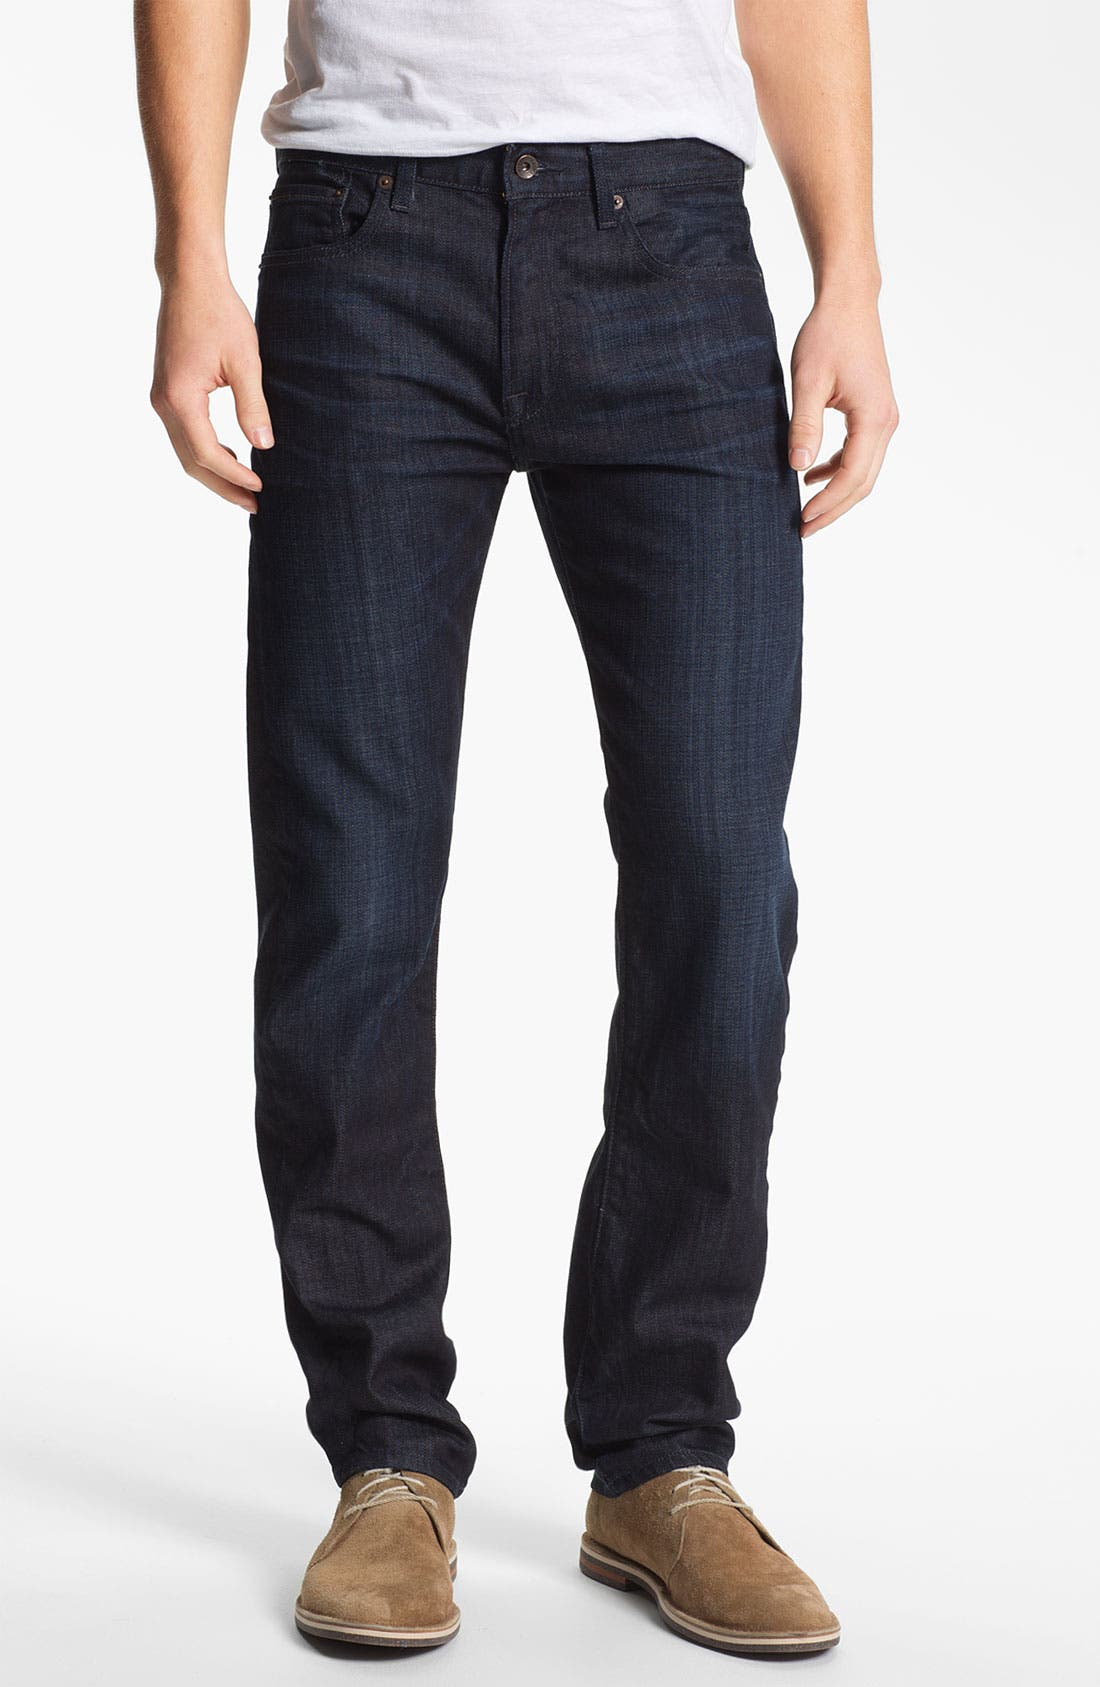 Alternate Image 1 Selected - Lucky Brand 'Dean' Straight Leg Jeans (Dark Kingston) (Online Only)